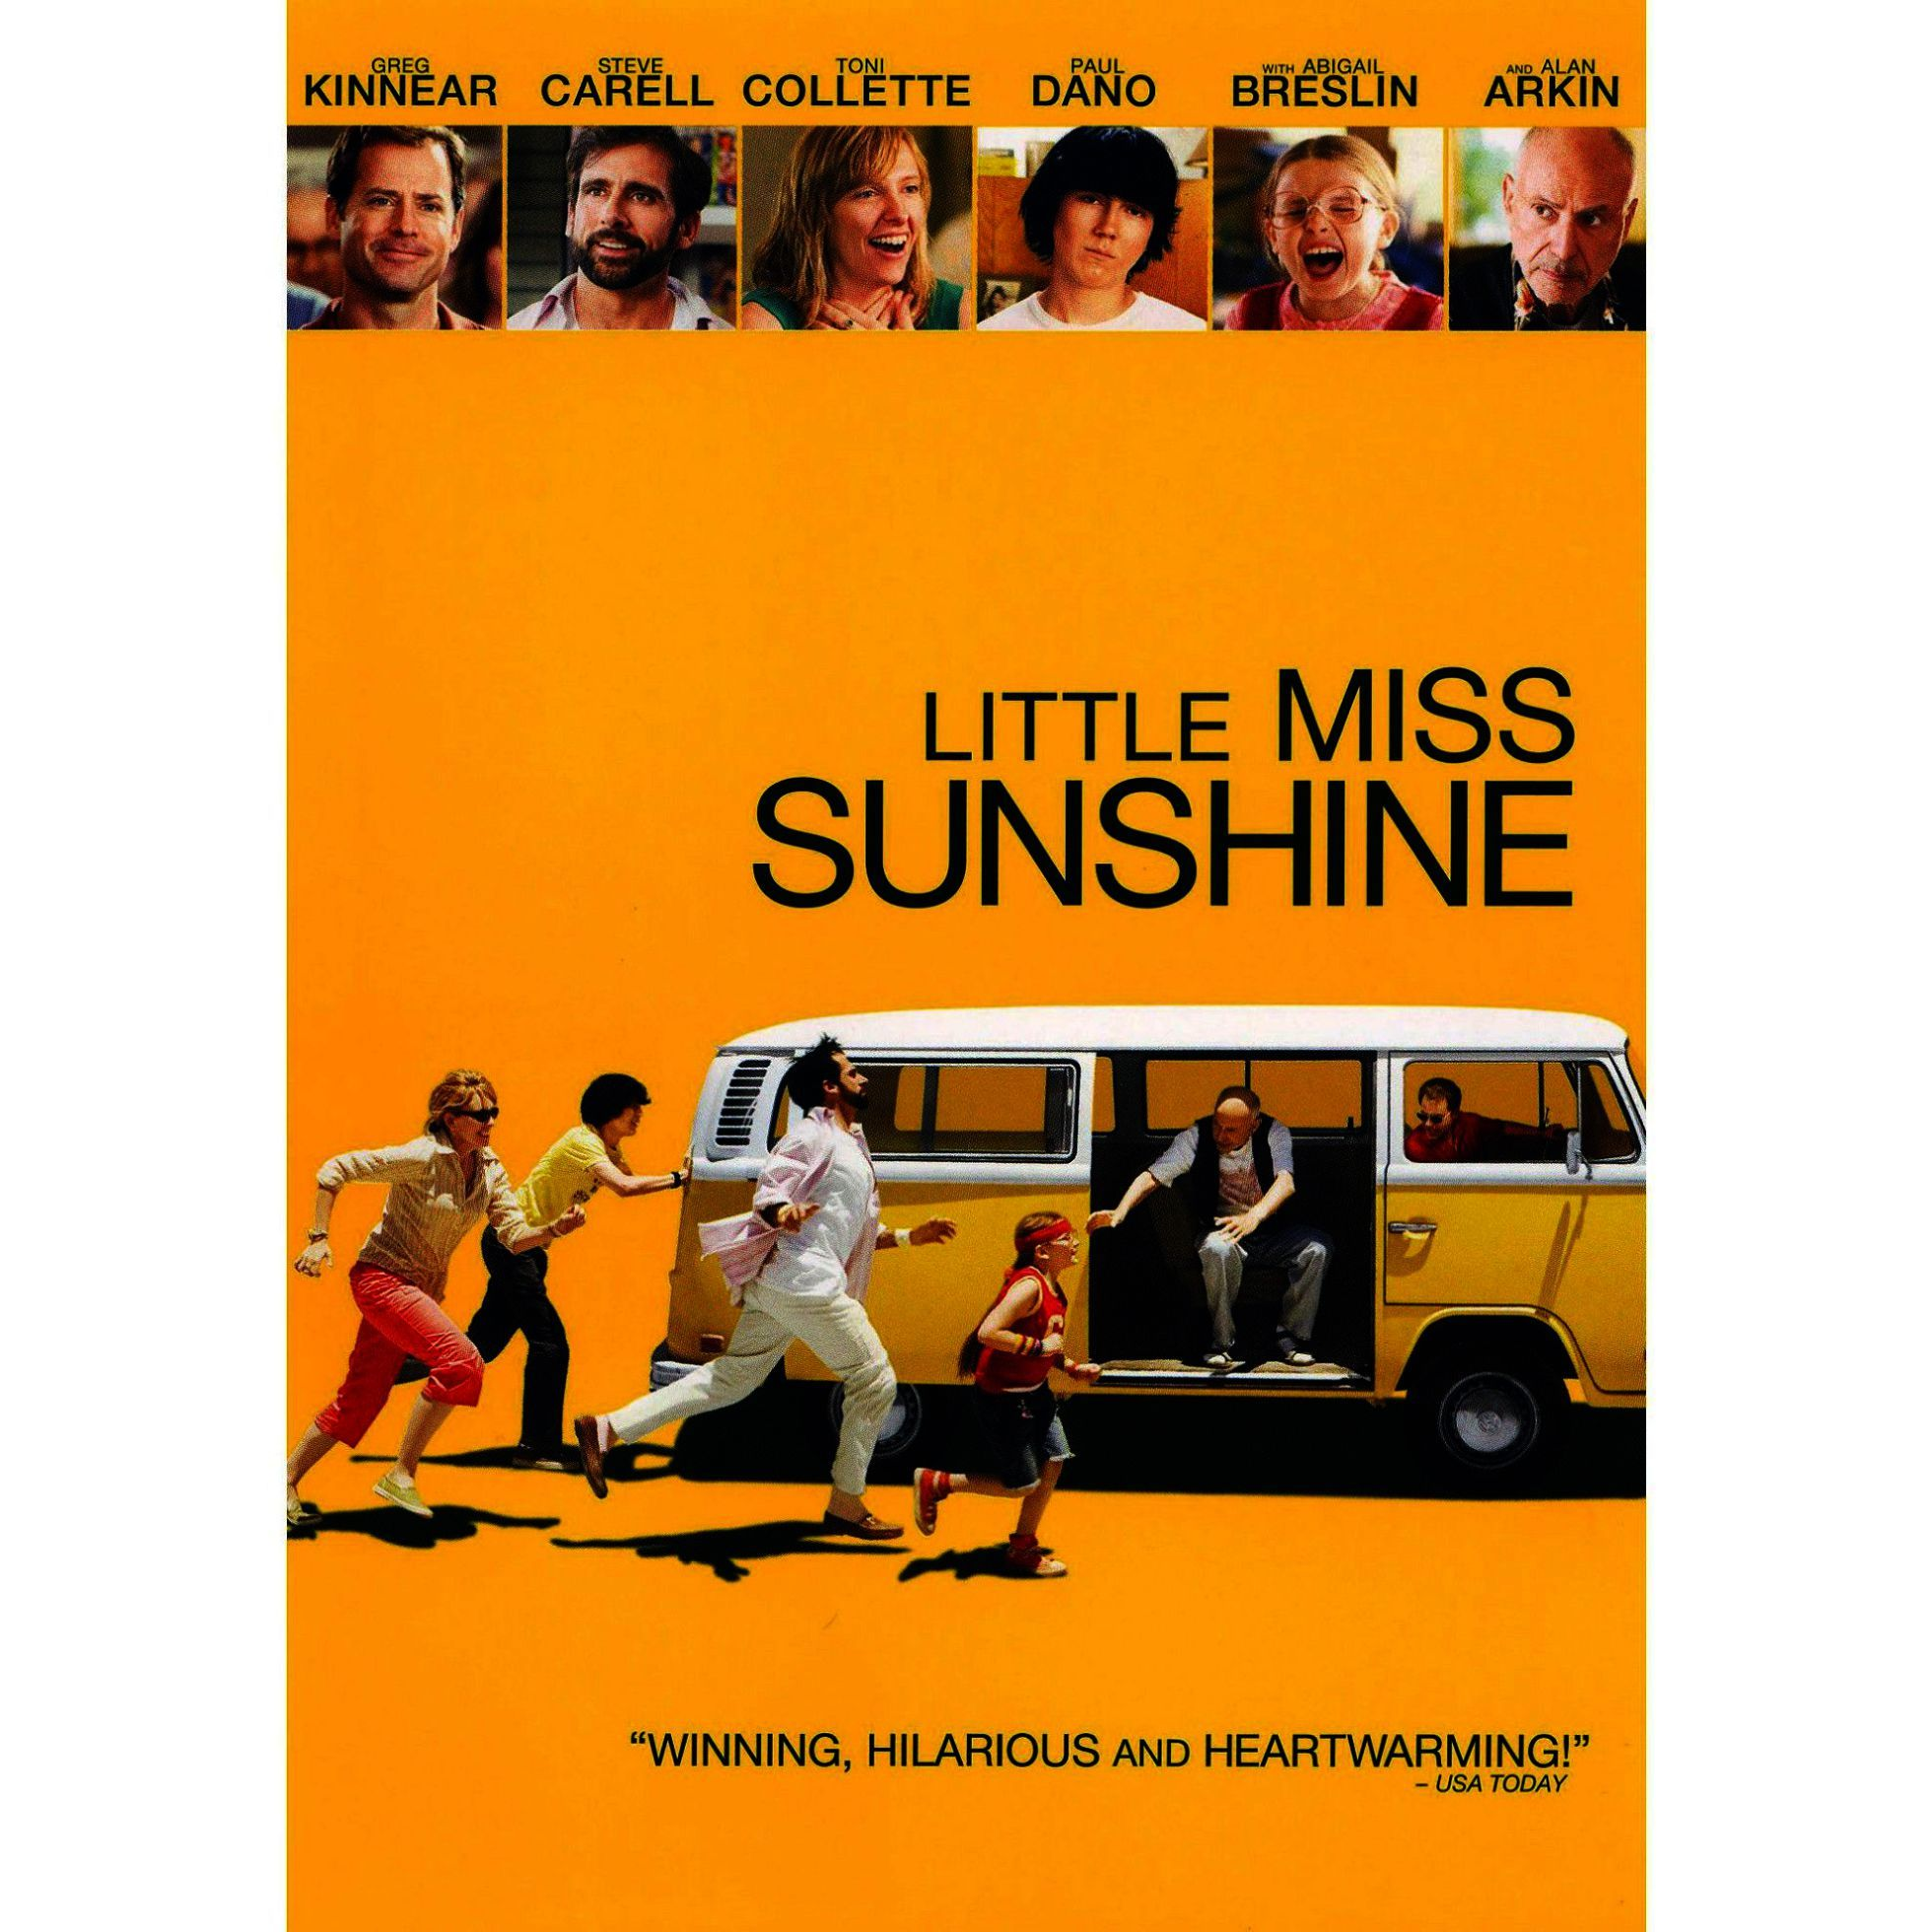 Movie Posters Marketing For Movie Poster Design Needed Plex Movie Poster Dimensions So Movie Poster Dimension Little Miss Sunshine Indie Movie Posters Movies